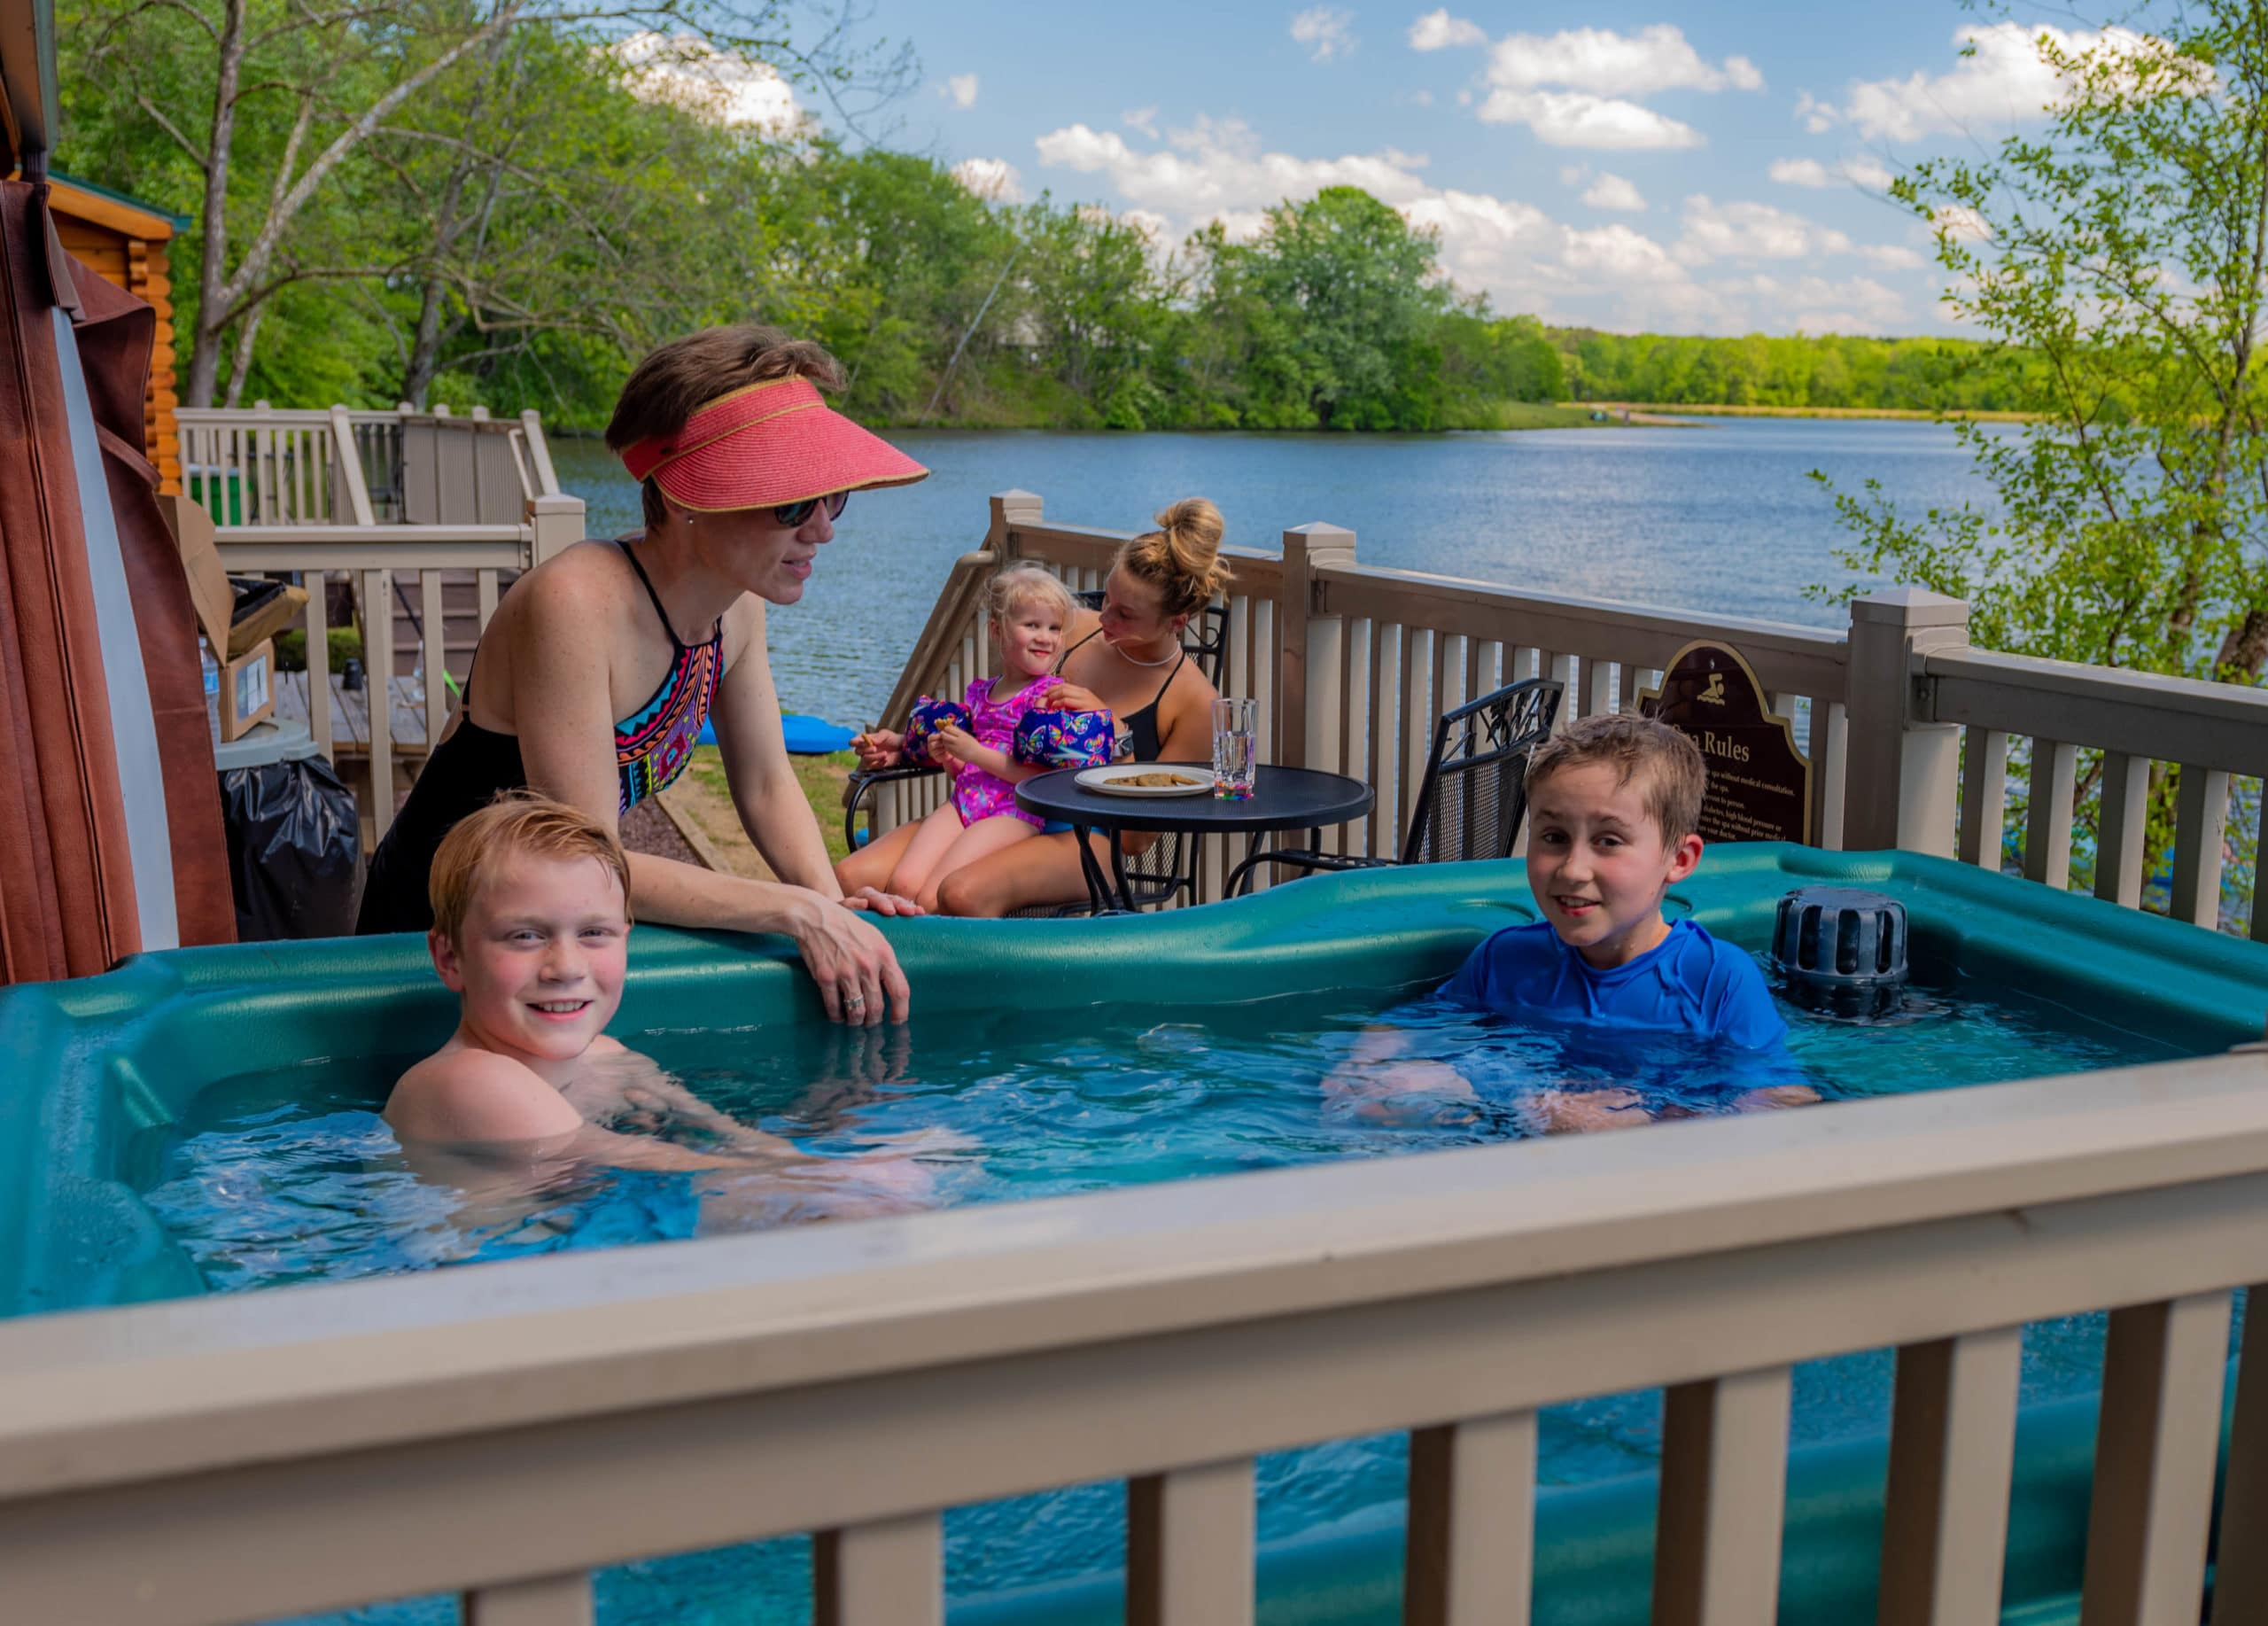 Boys in hot tub on camp cottage deck with Mom and family in background